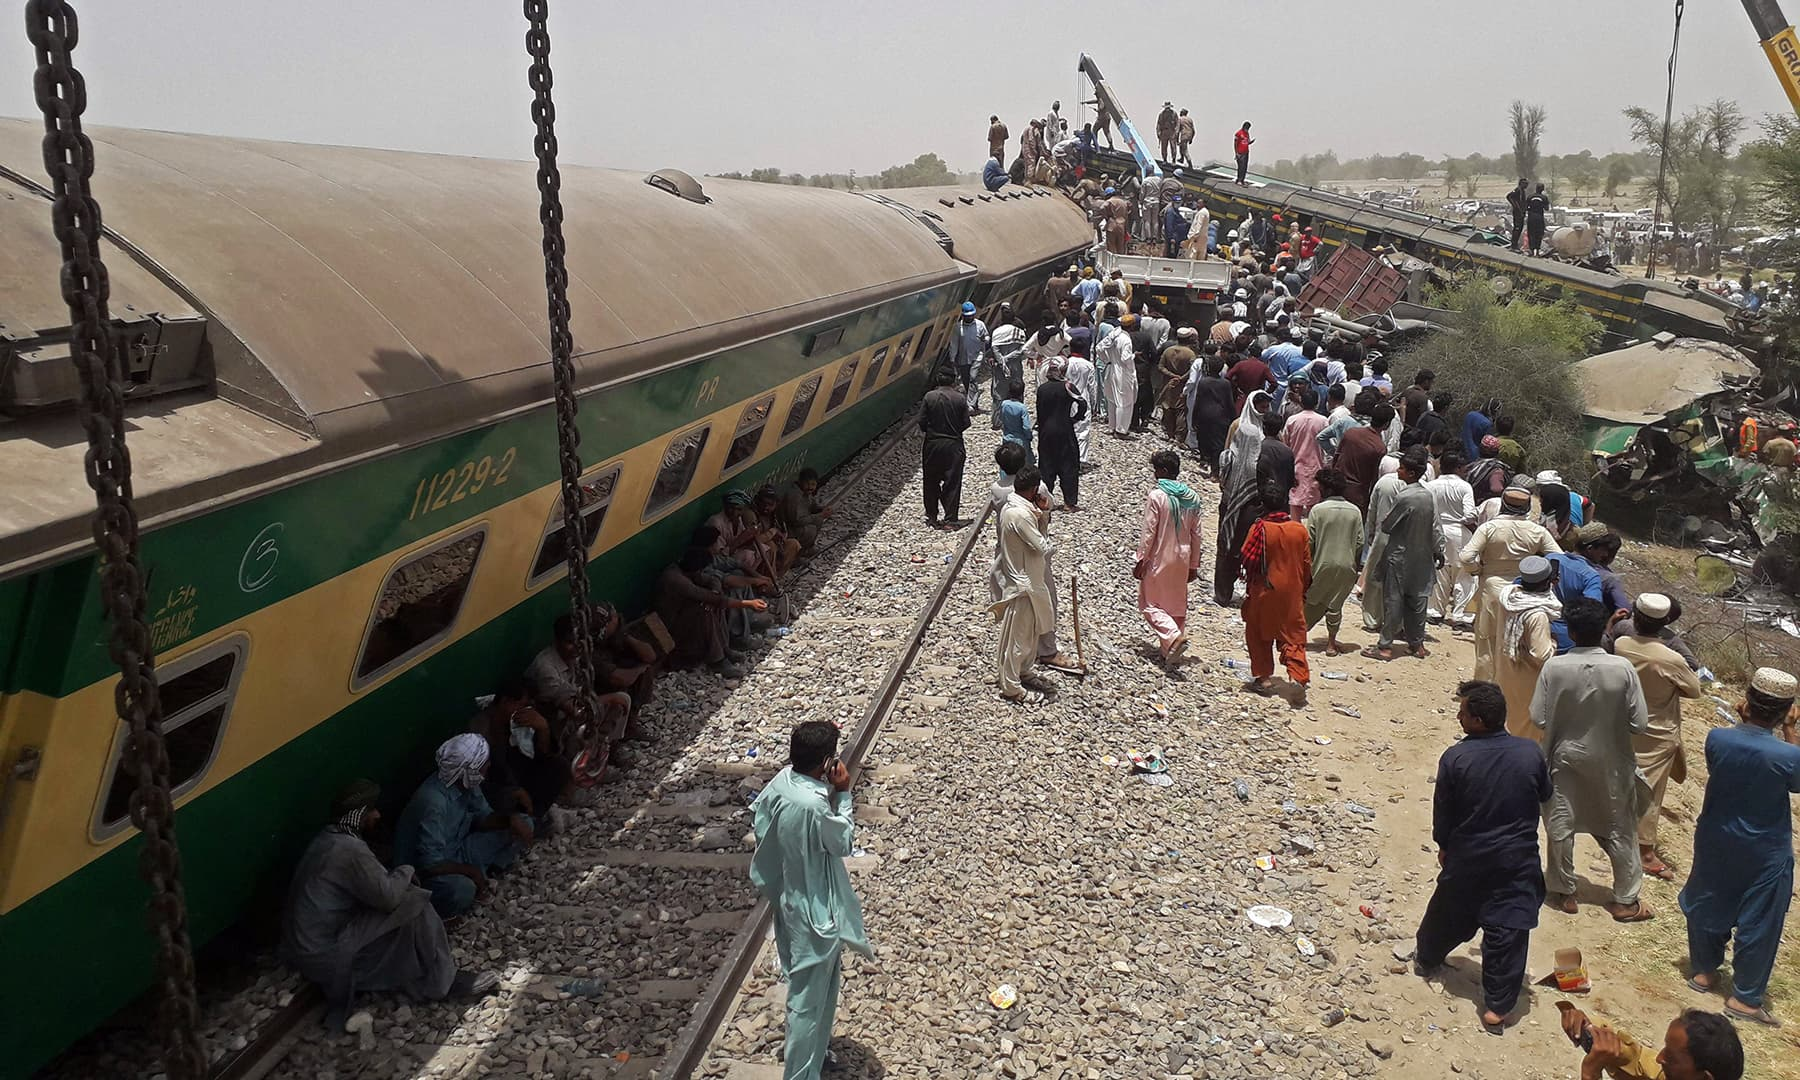 Security personnel and onlookers stand at the site of a train accident in Daharki area of northern Sindh on Monday. — AFP